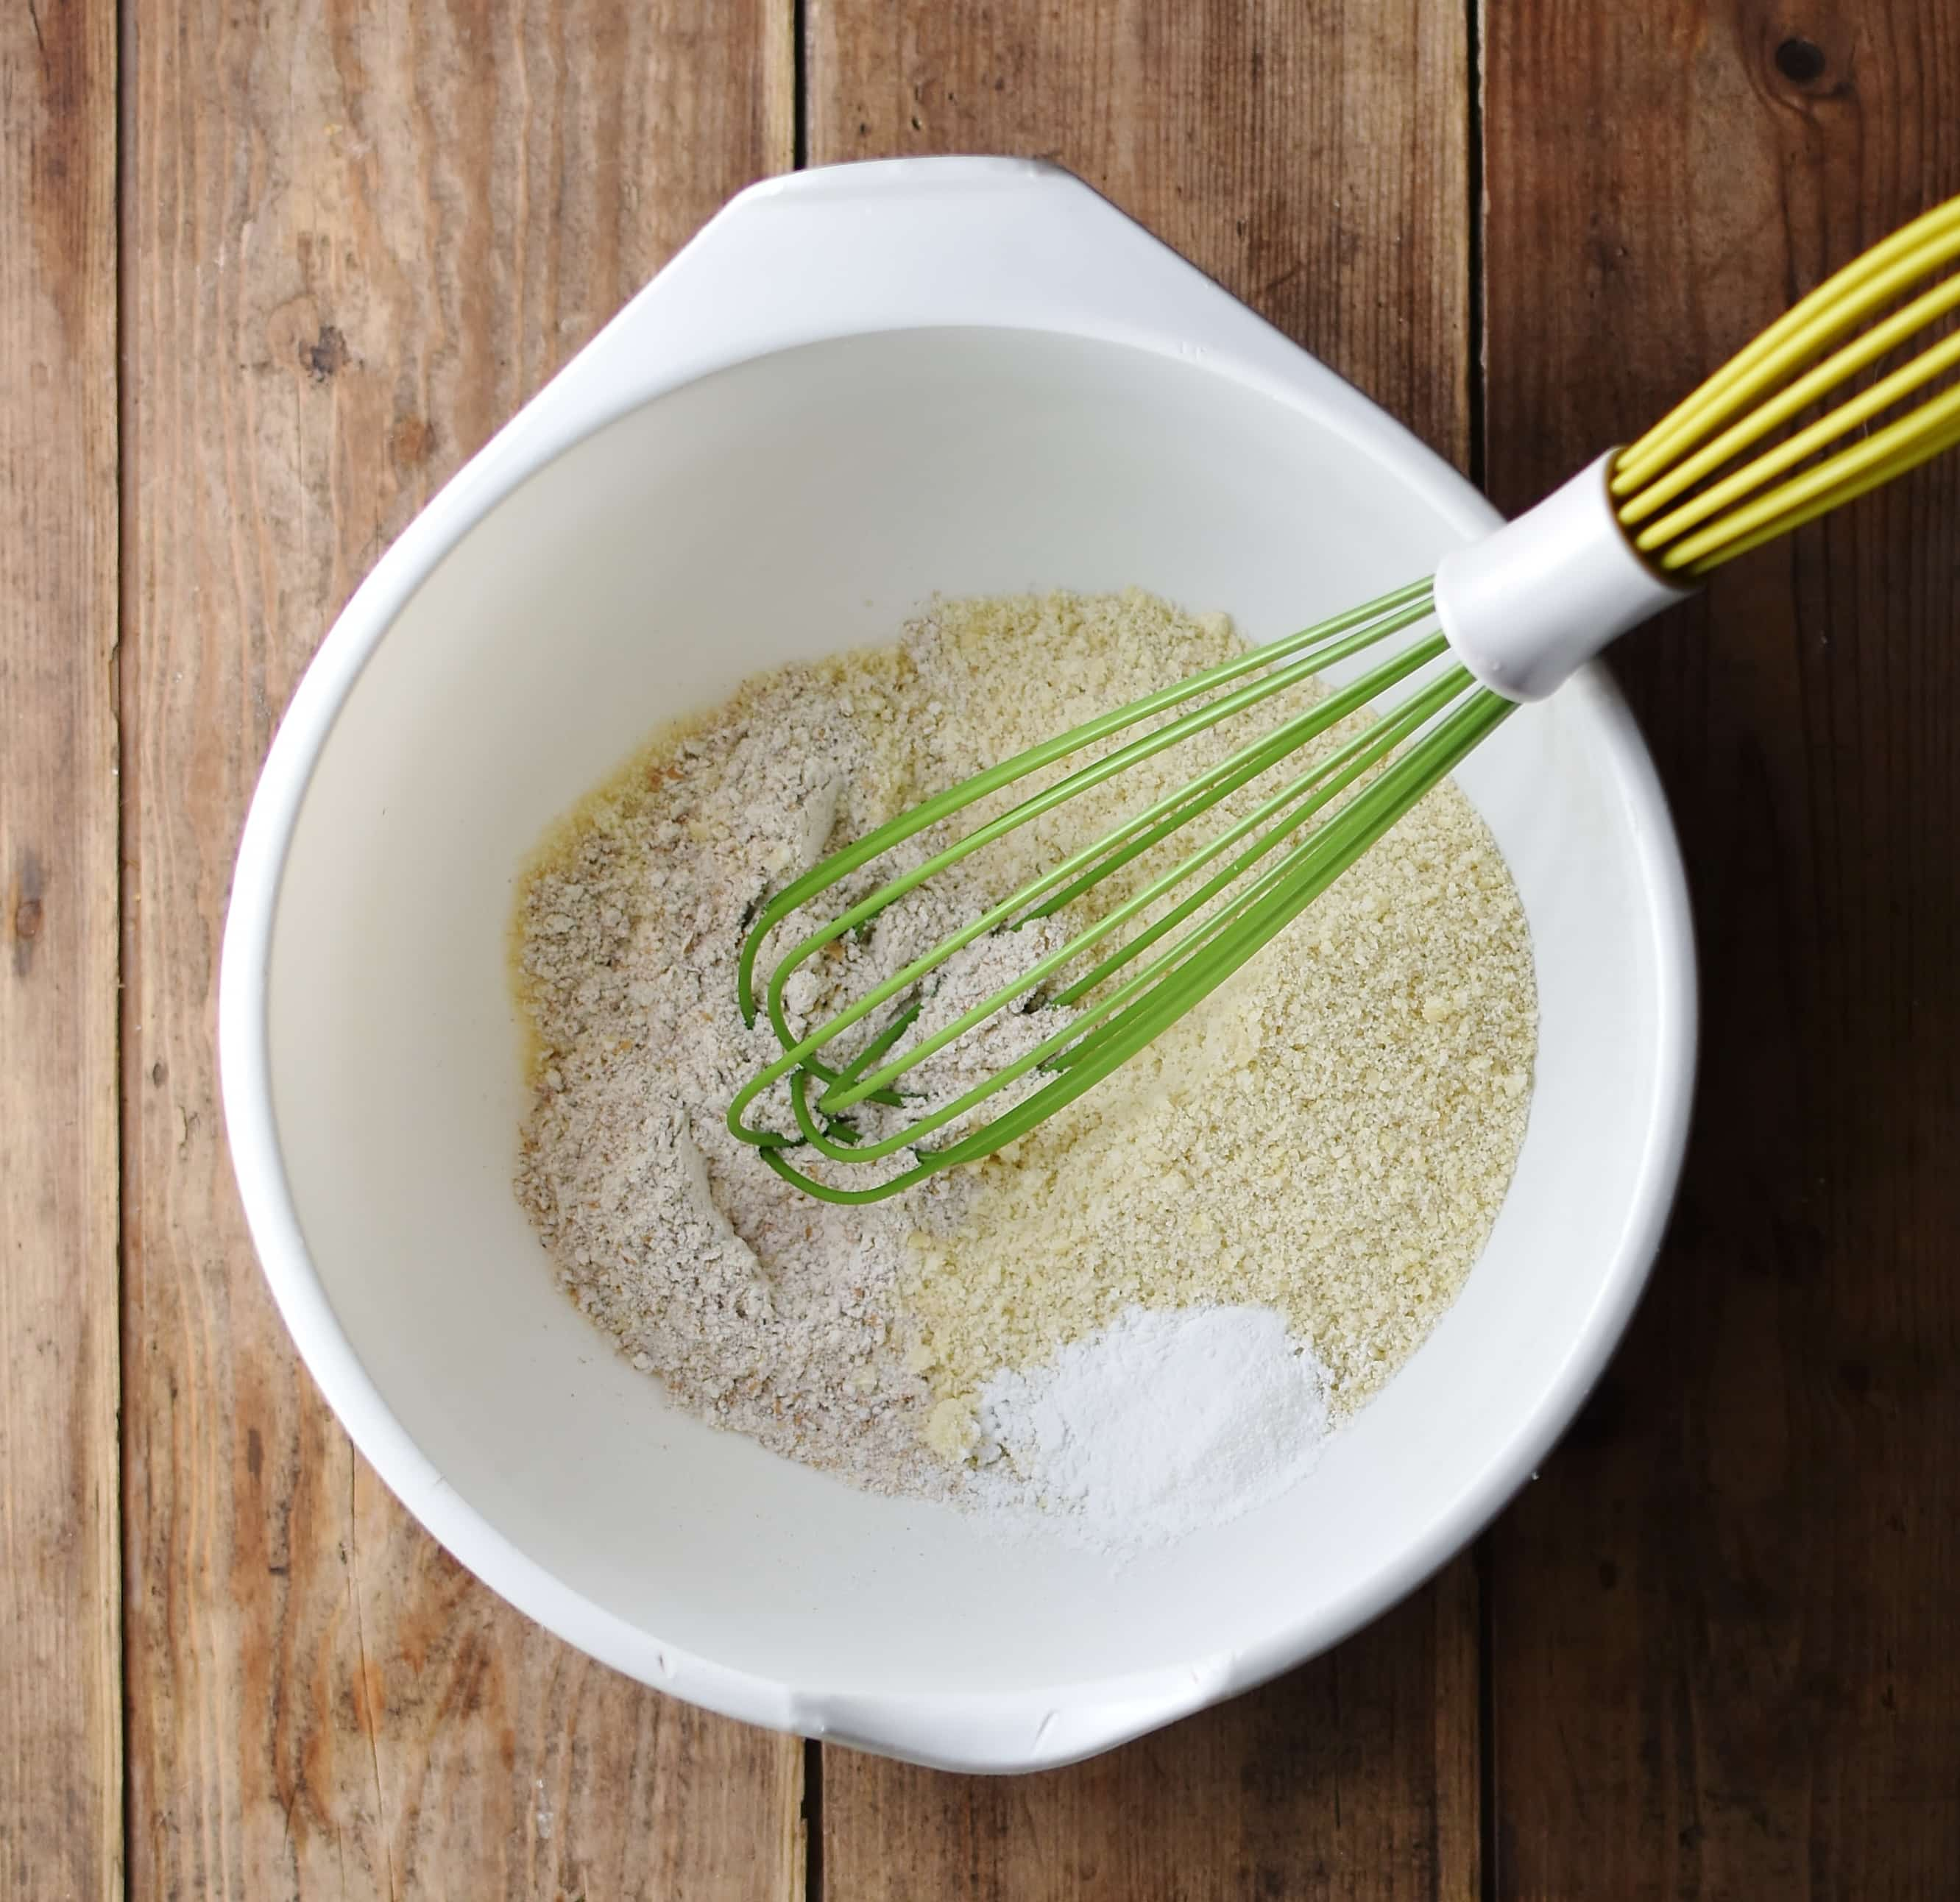 Flour mixture with green whisk on large white bowl.